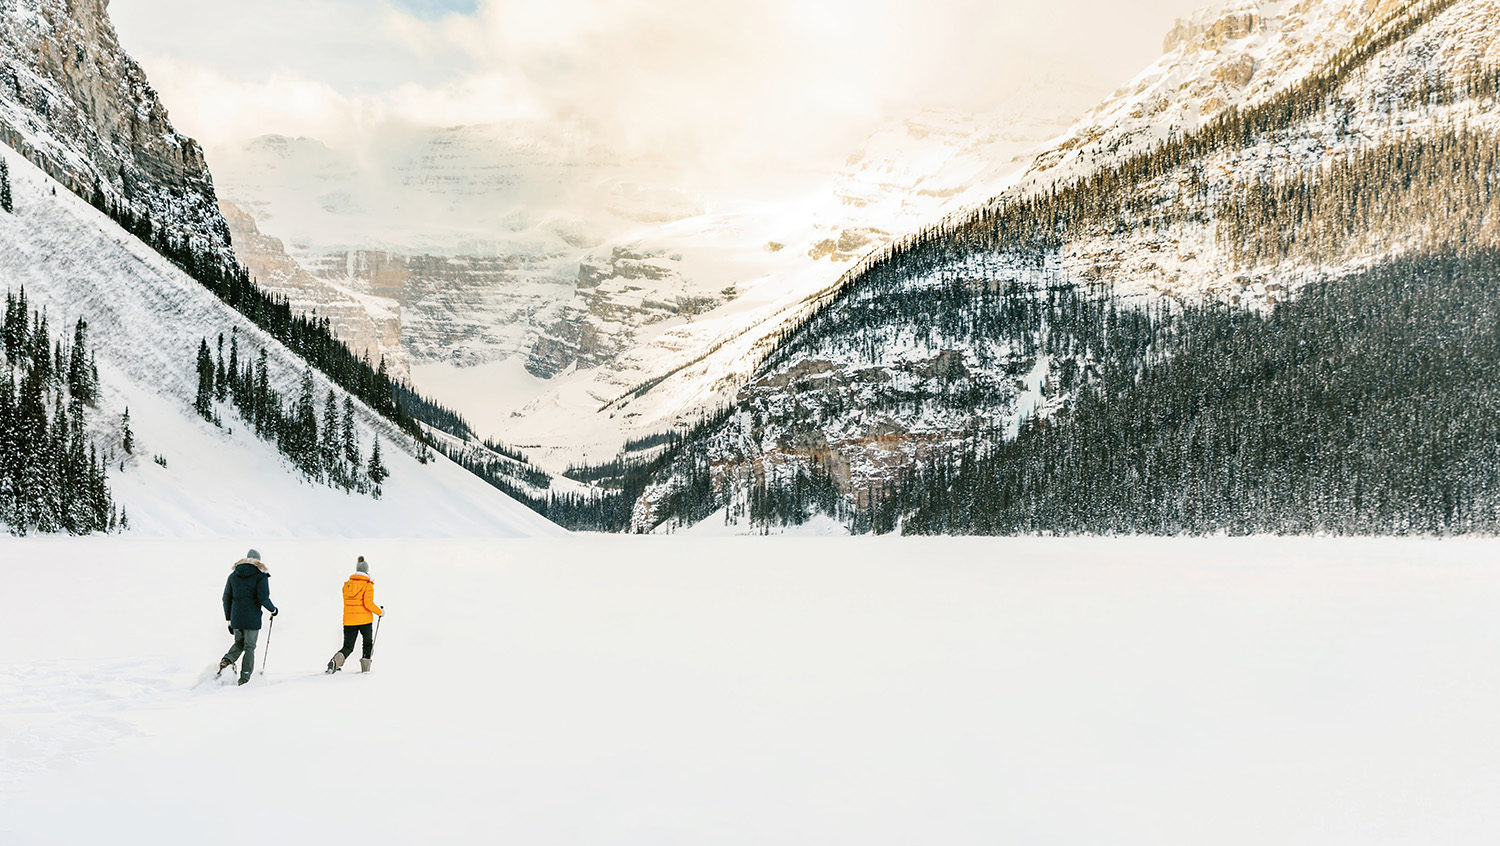 winter job opportunities in banff